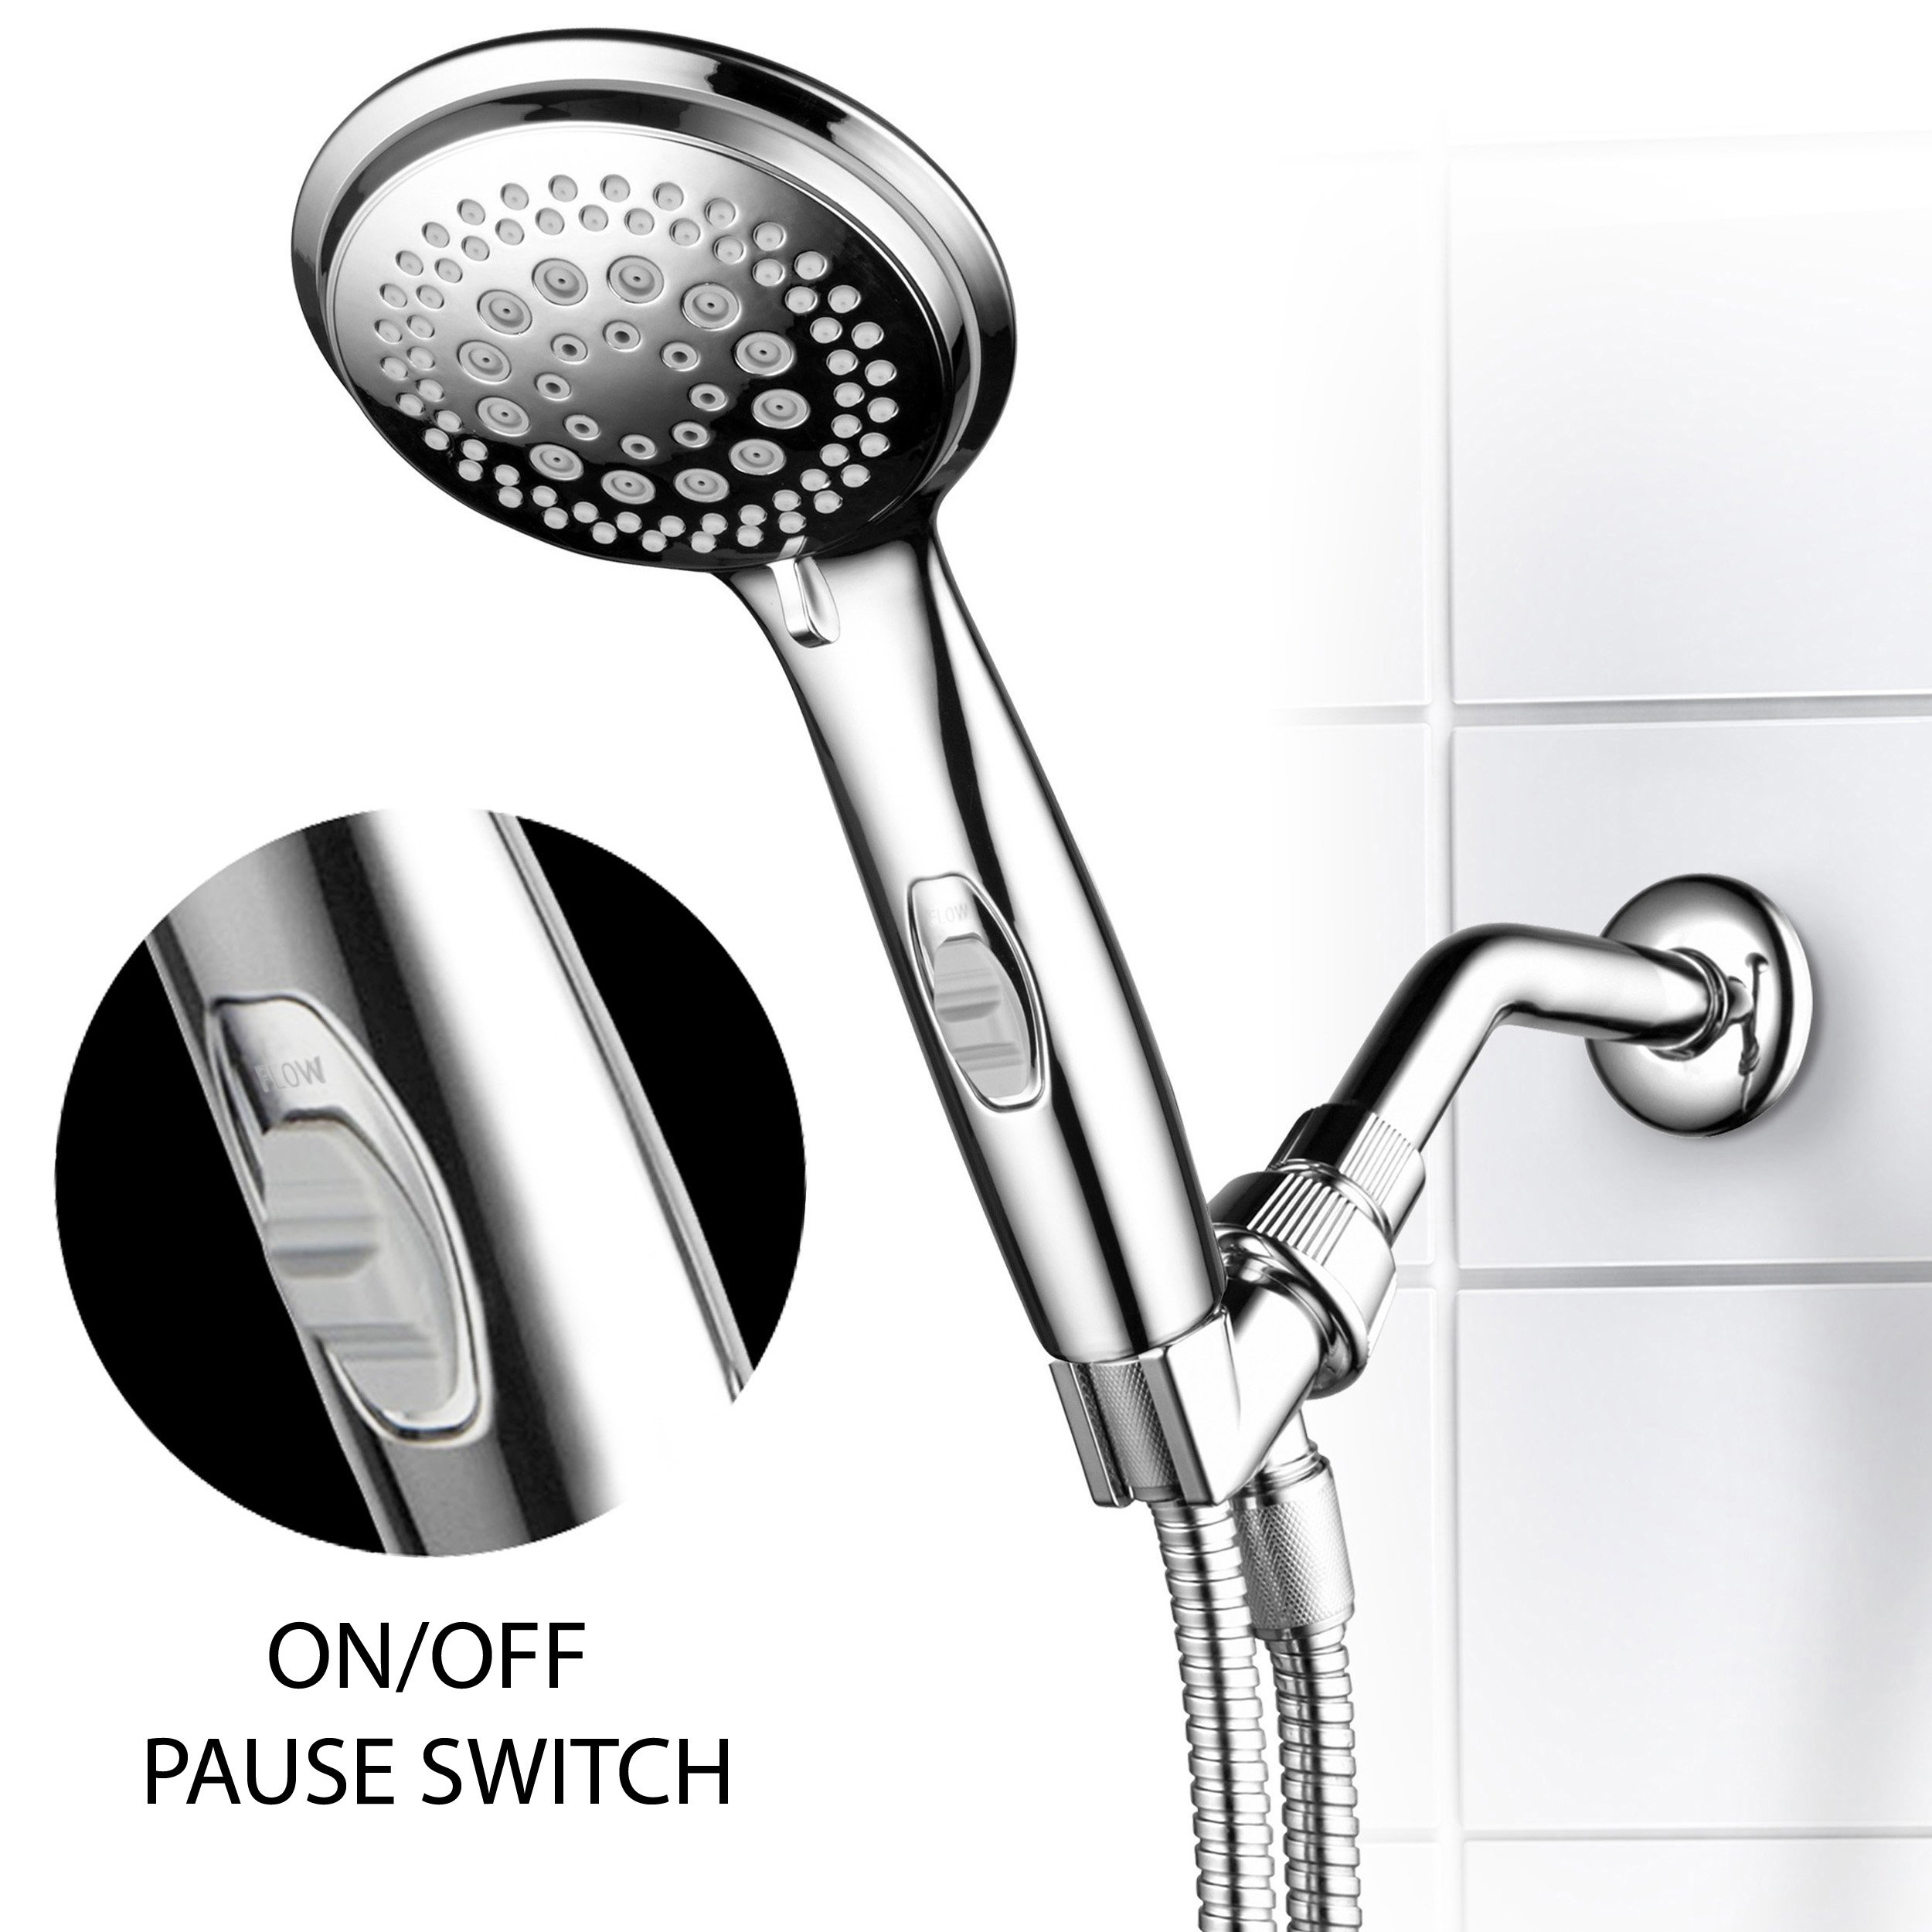 Dream Spa 1459 9-Setting High-Power Ultra-Luxury Handheld Shower Head with Patented ON / OFF Pause Switch and 5-7 foot Stretchable Stainless Steel Hose (Premium Chrome) Use as overhead or handshower by Dream Spa (Image #2)